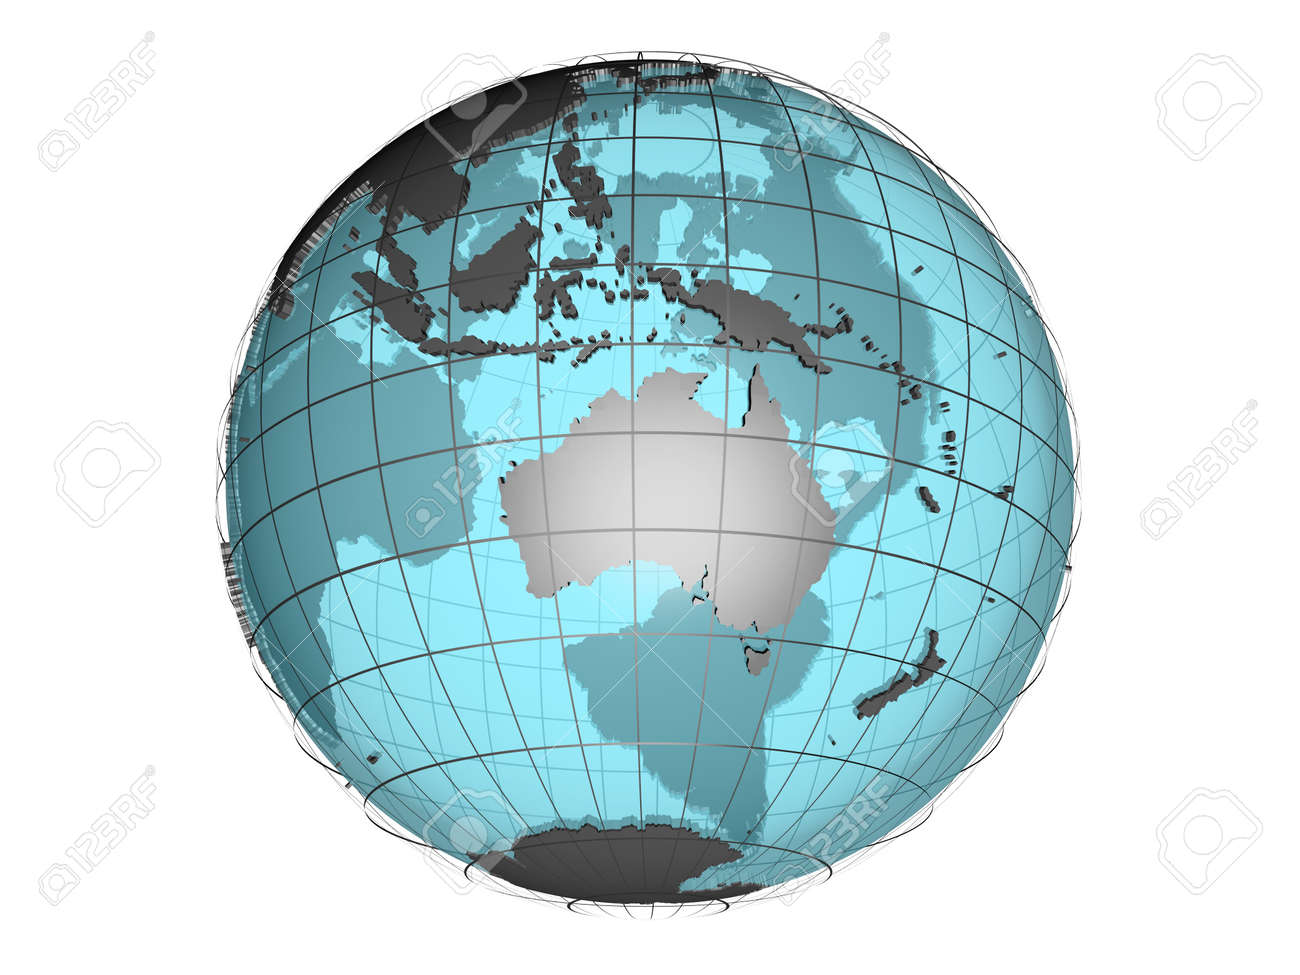 3d model of globe map showing australian and oceania continent stock 3d model of globe map showing australian and oceania continent stock photo 8668907 gumiabroncs Choice Image